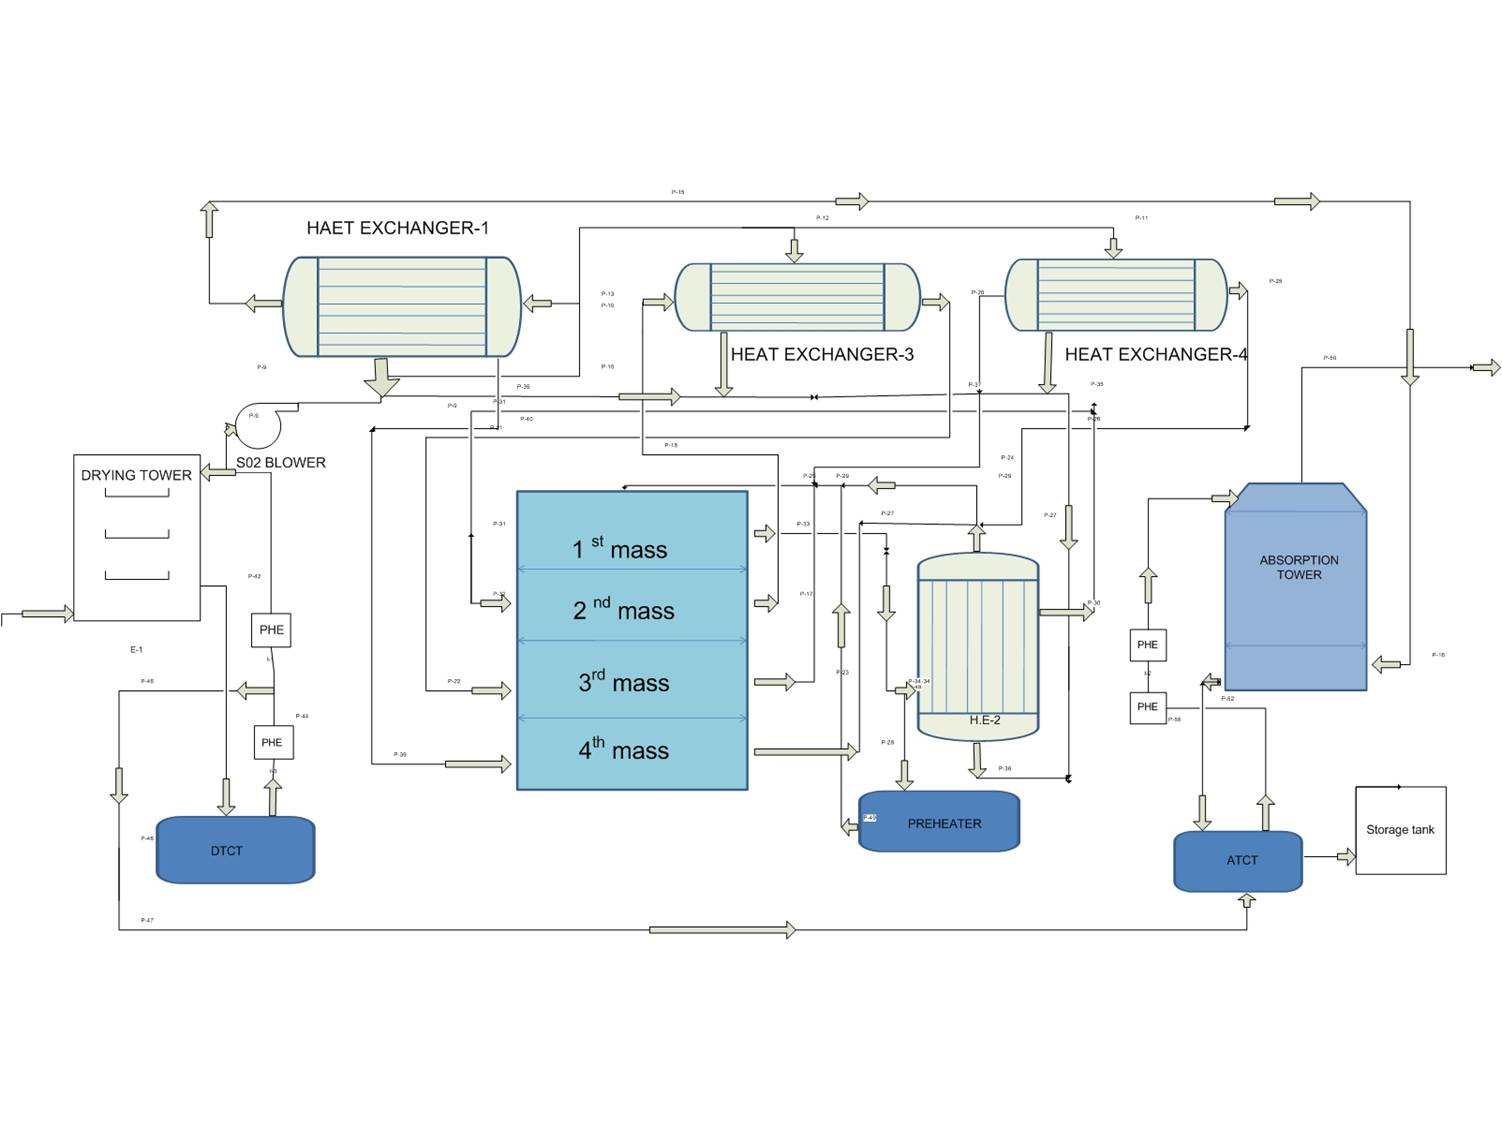 Engineers Guide Manufacture Of 200 Tpd Sulphuric Acid Flow Sheet Process Diagram Pfd Block Sulfuric Production By Contact